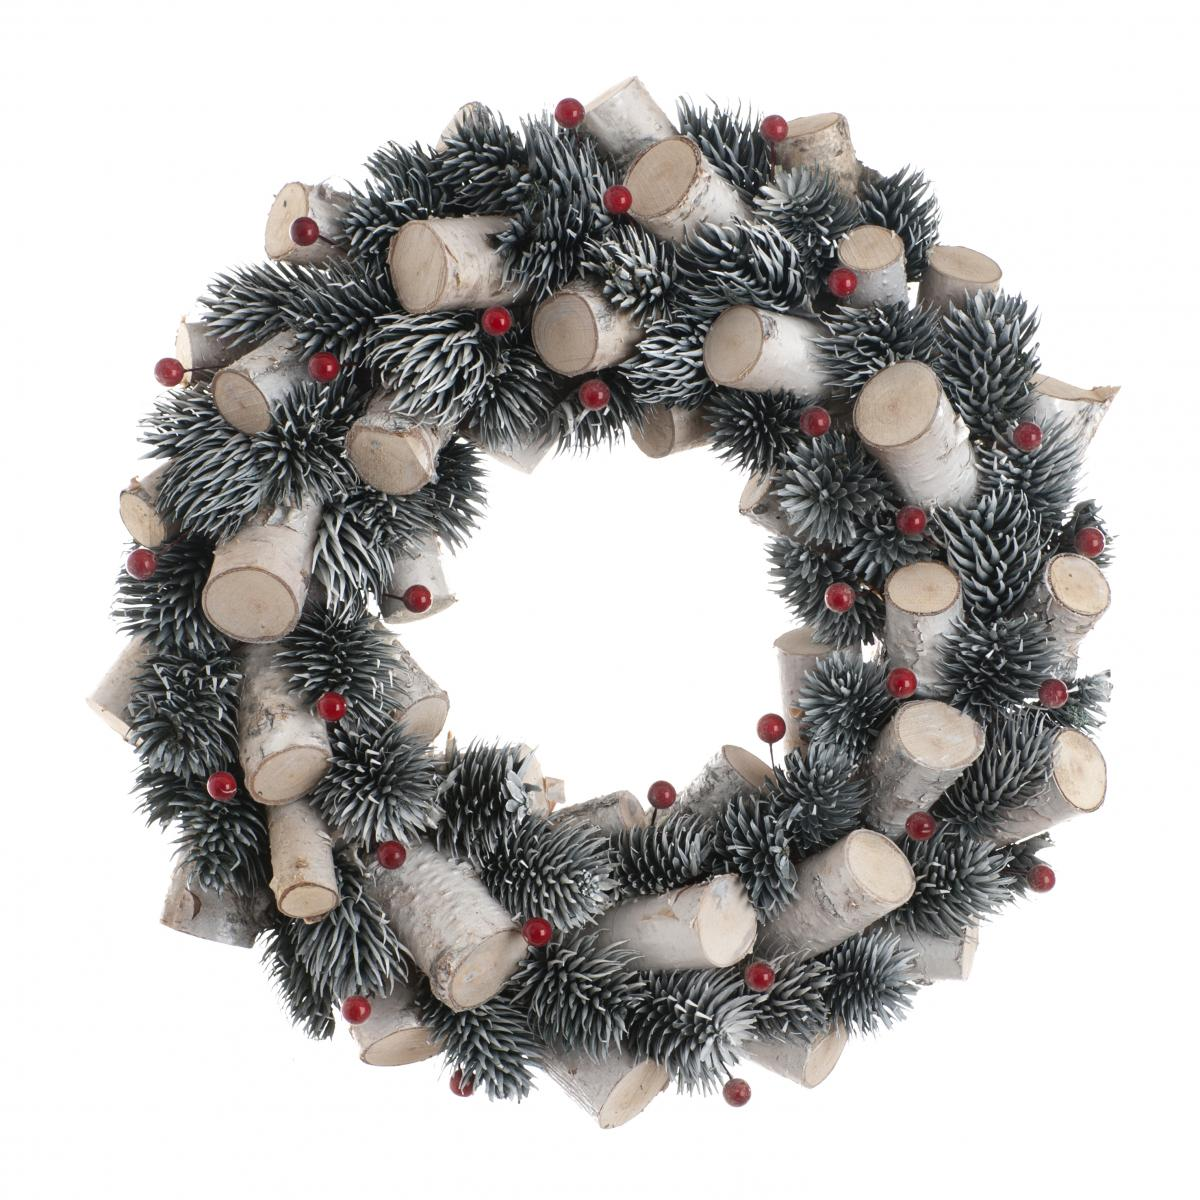 30cm Red berry and stick wreath in a box – Now Only £10.00